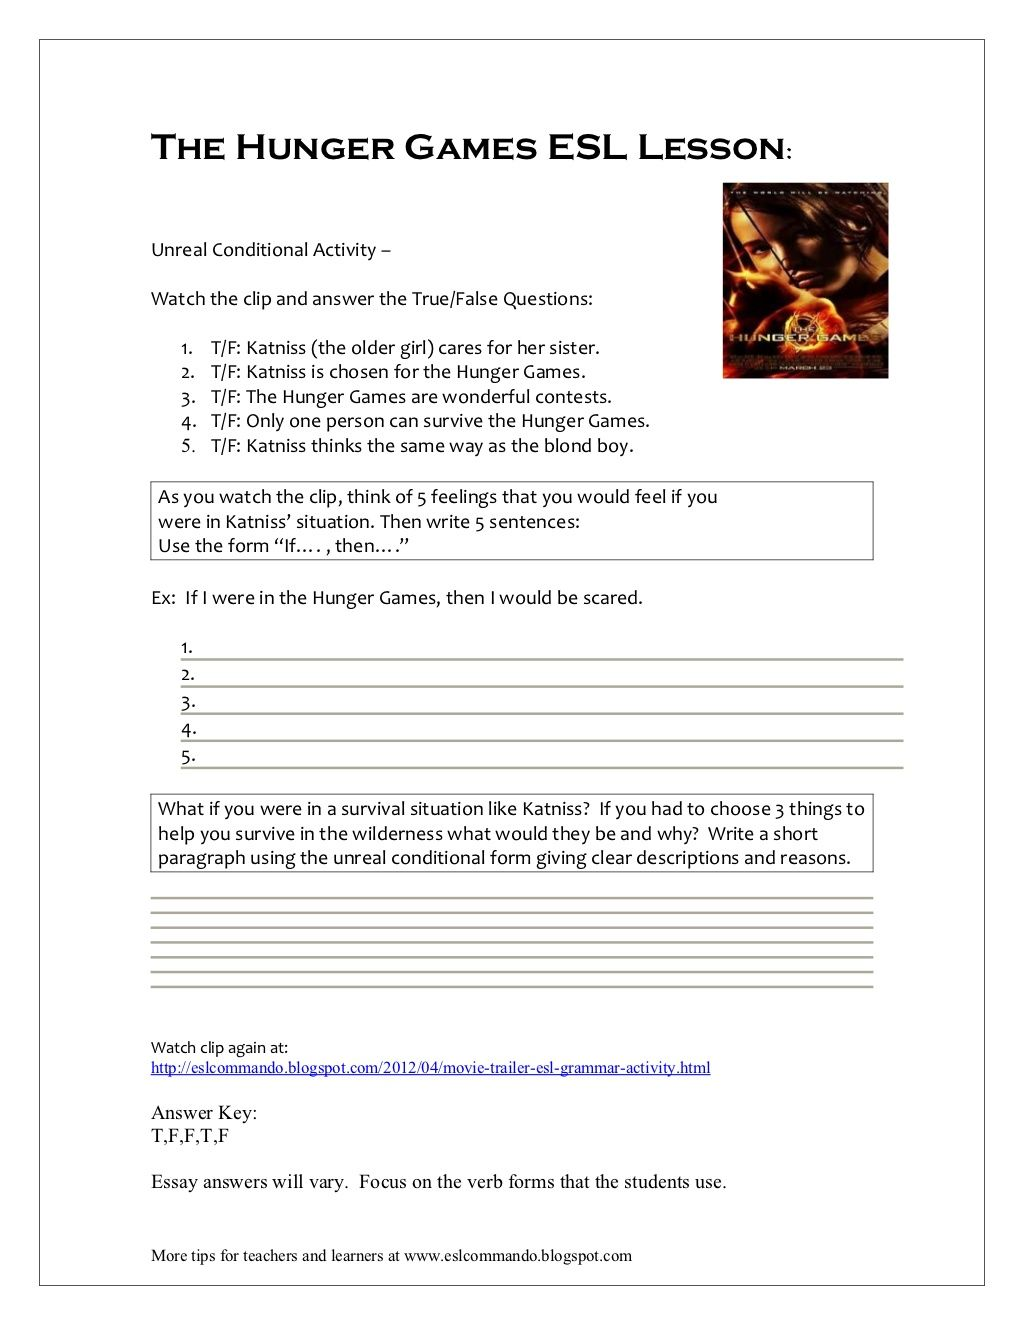 The Hunger Games Esl Lesson By Phricee Via Slideshare